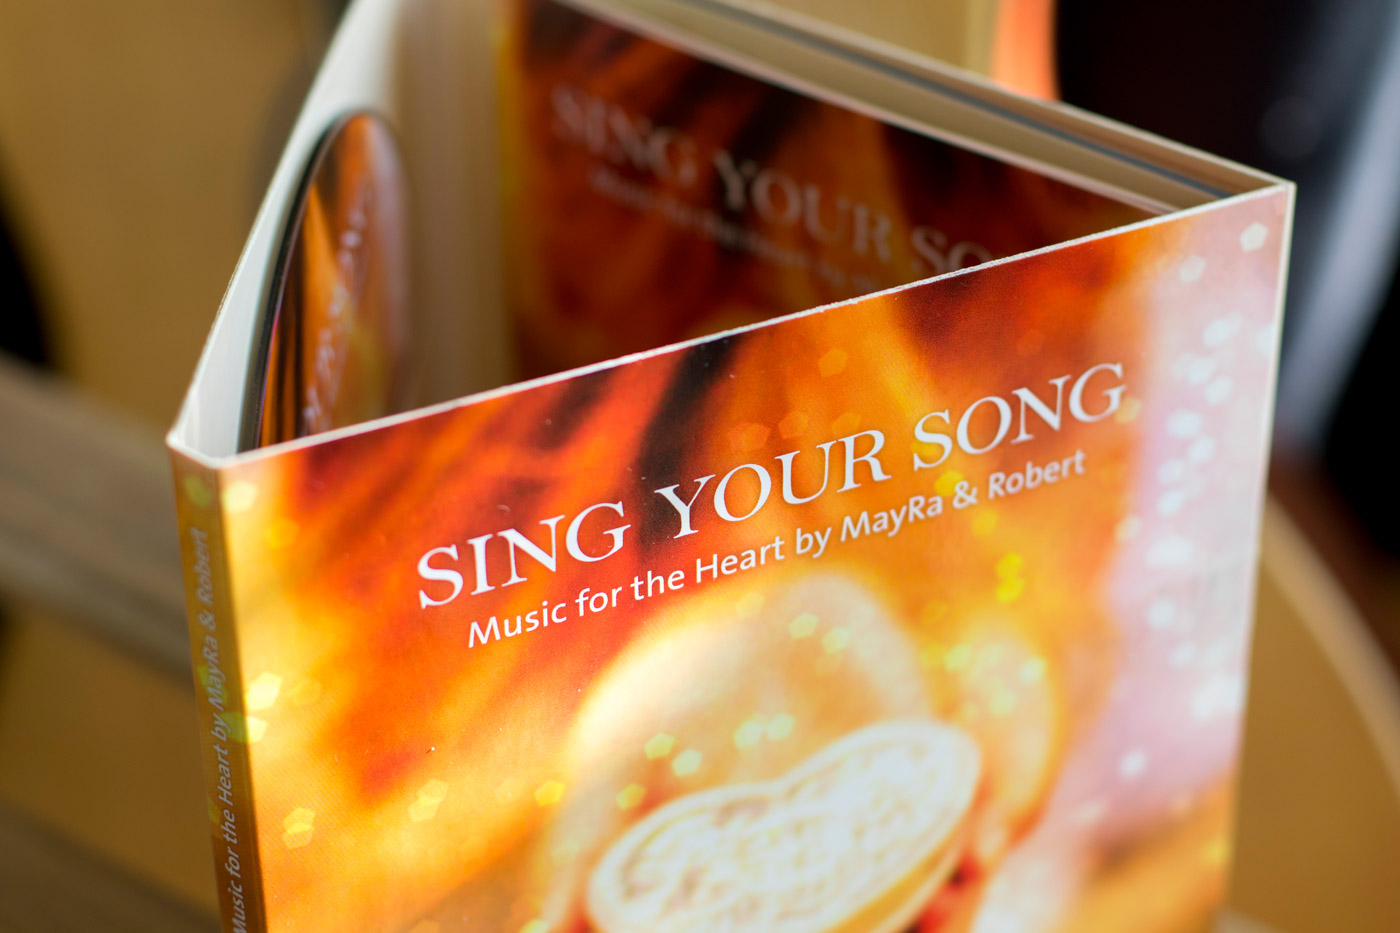 sing-your-song-audio-cd-7